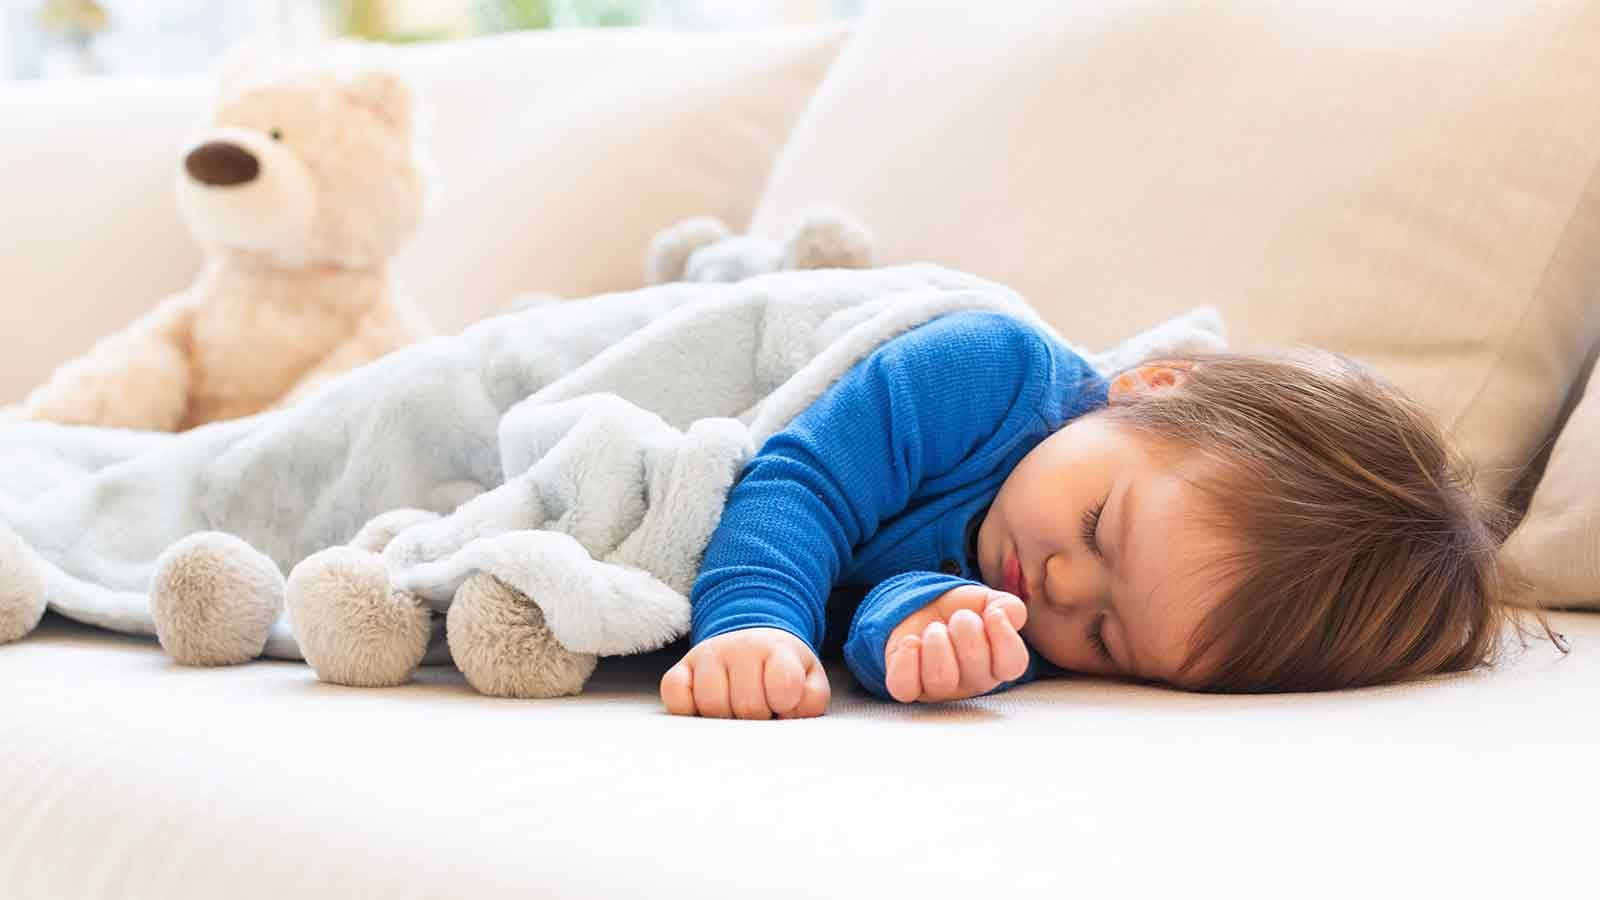 Toddler napping on a sofa.